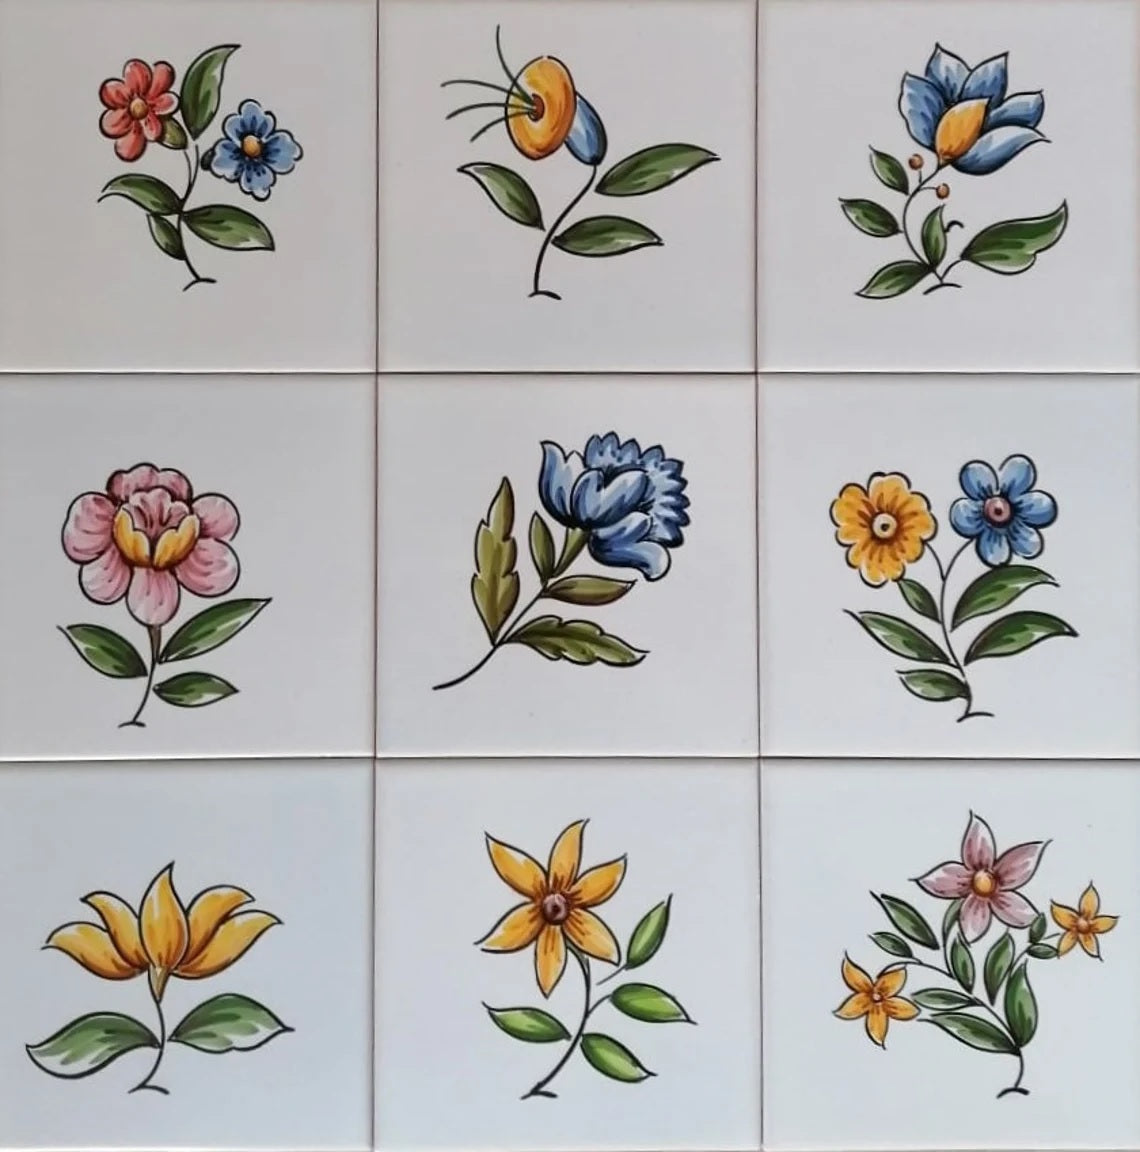 Decorative Tiles with Colourful Flowers | Portuguese Tiles